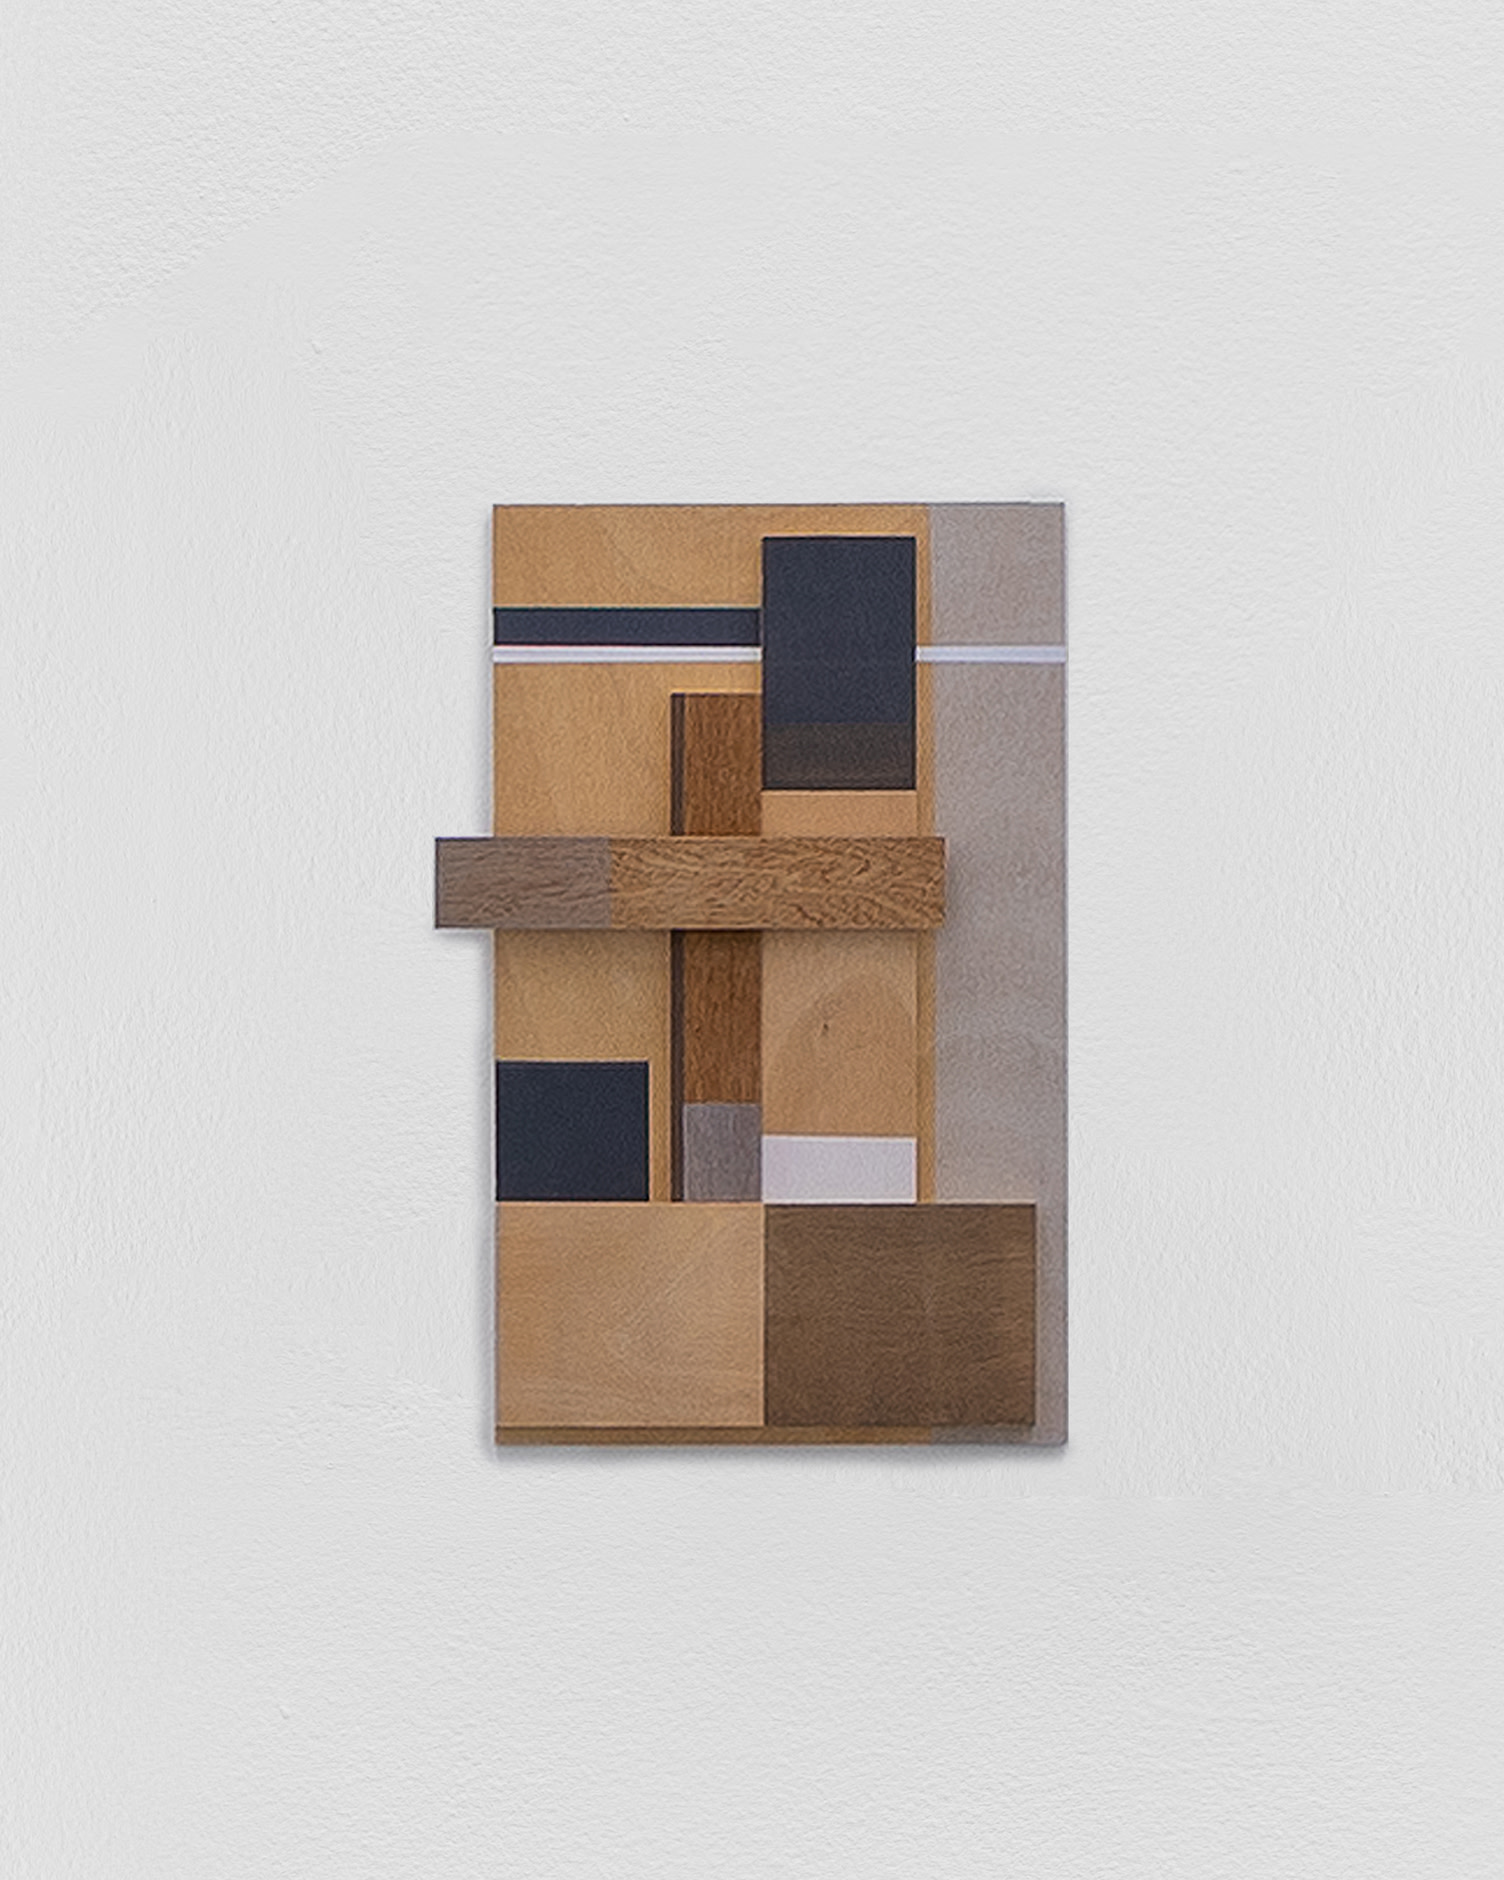 "<span class=""link fancybox-details-link""><a href=""/exhibitions/93/works/artworks2359/"">View Detail Page</a></span>Sarah Almehairi  Building Blocks 1, Series 1, 2018  Acrylic on wood   60 x 41 x 45.3 cm 23 5/8 x 16 1/8 x 17 7/8 in"